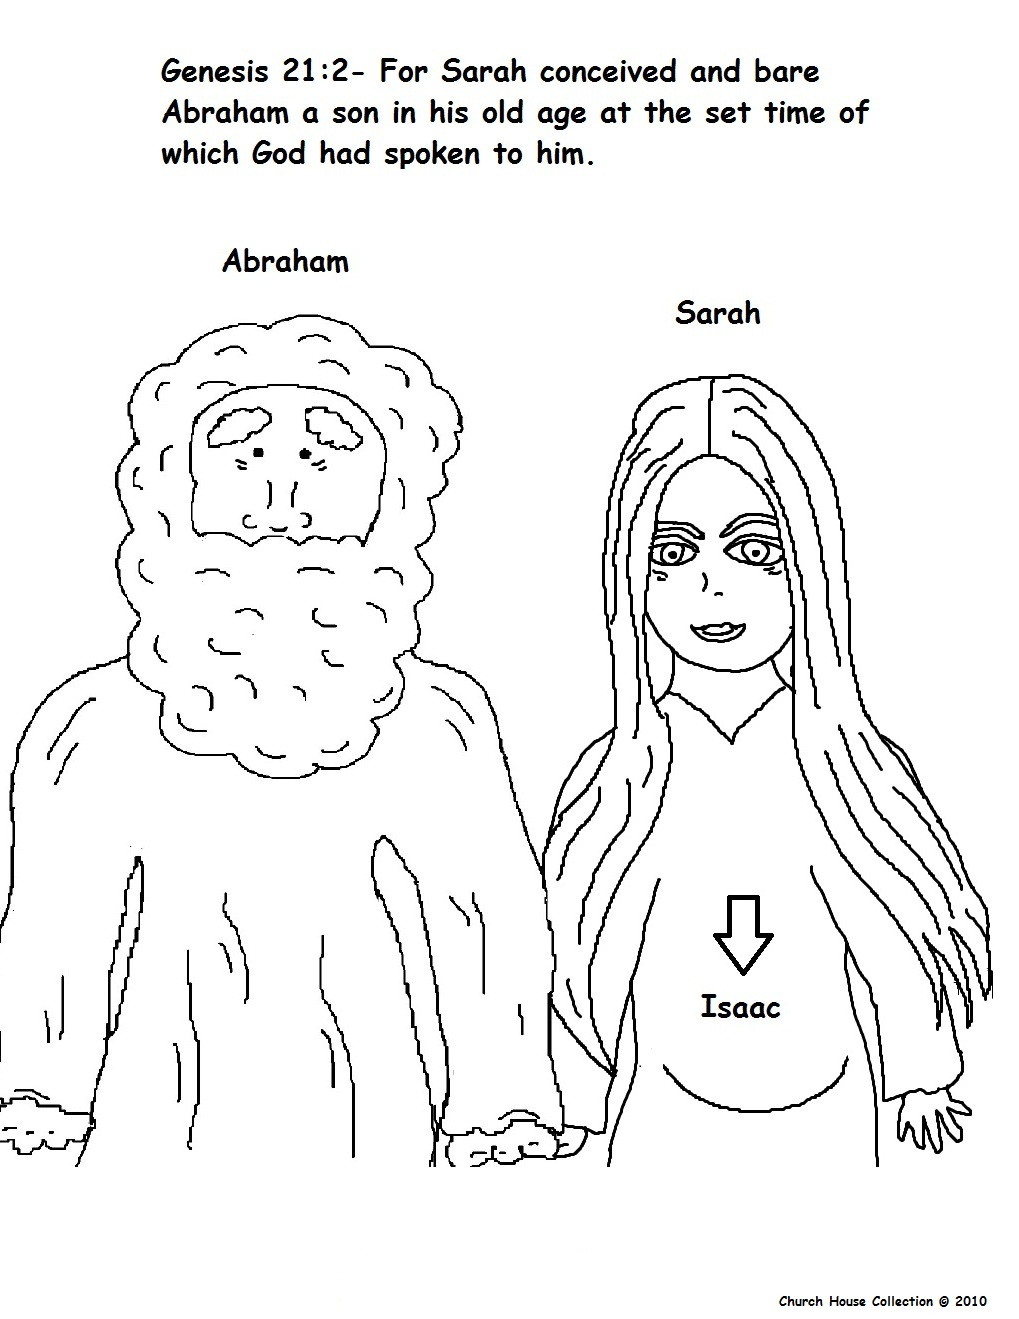 Adult Beauty Rahab Coloring Page Gallery Images cute abrams three visitors mission bible class colouring page of abram and sarah pregnant at httpwww churchhousecollection jpg